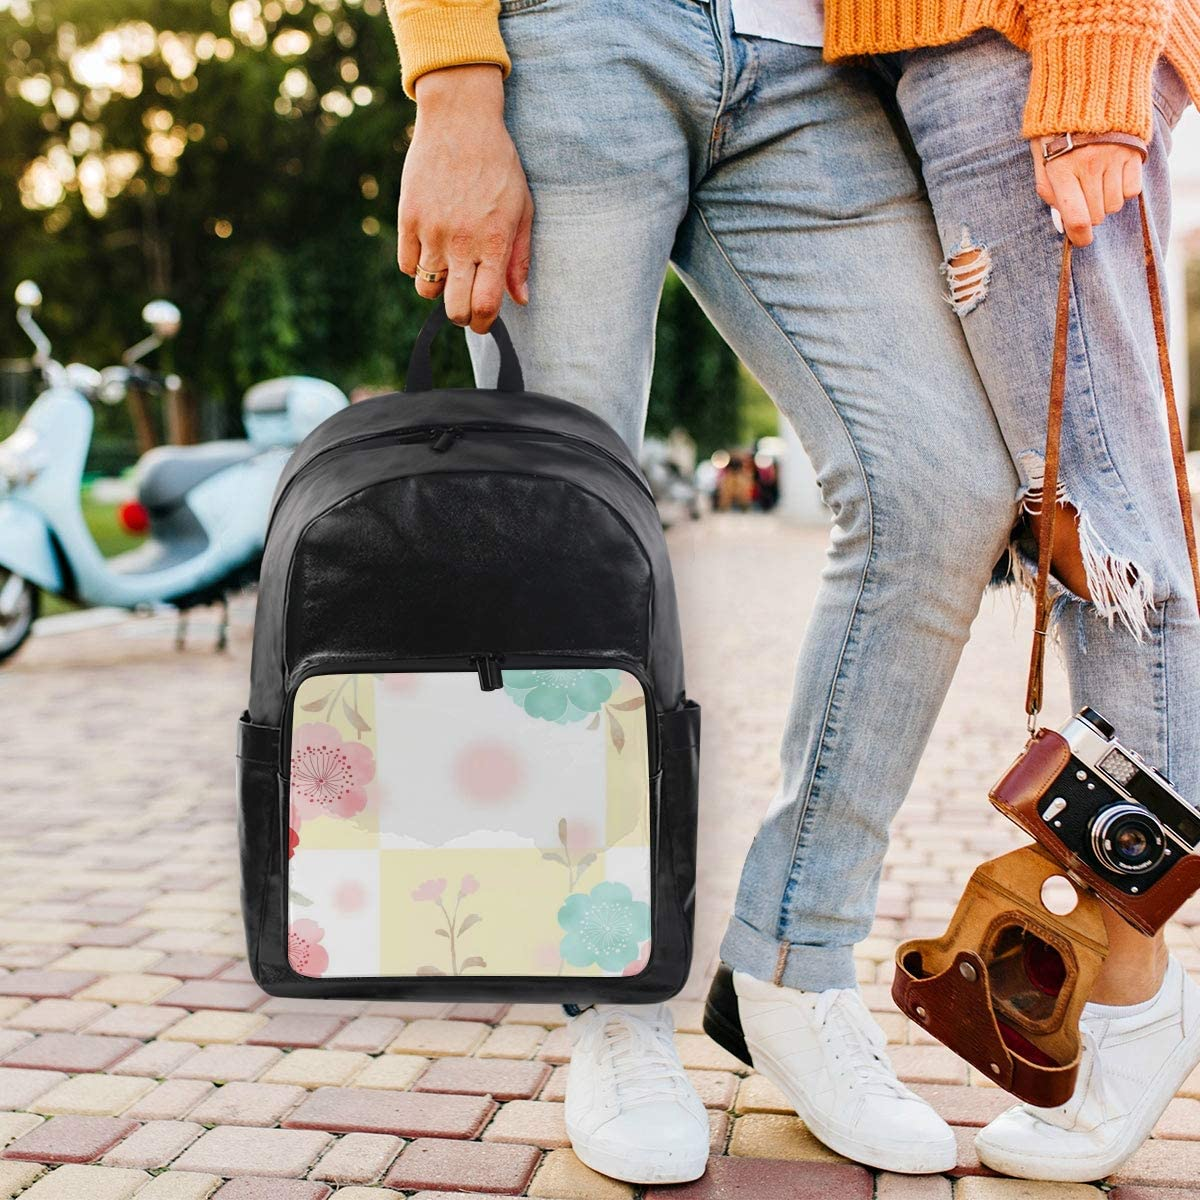 Holds 12.5-inch Laptop Student Backpacks College School Book Bag Travel Hiking Camping Daypack for boy for Girl Cherry Blossom Square 12.5x9x17.5